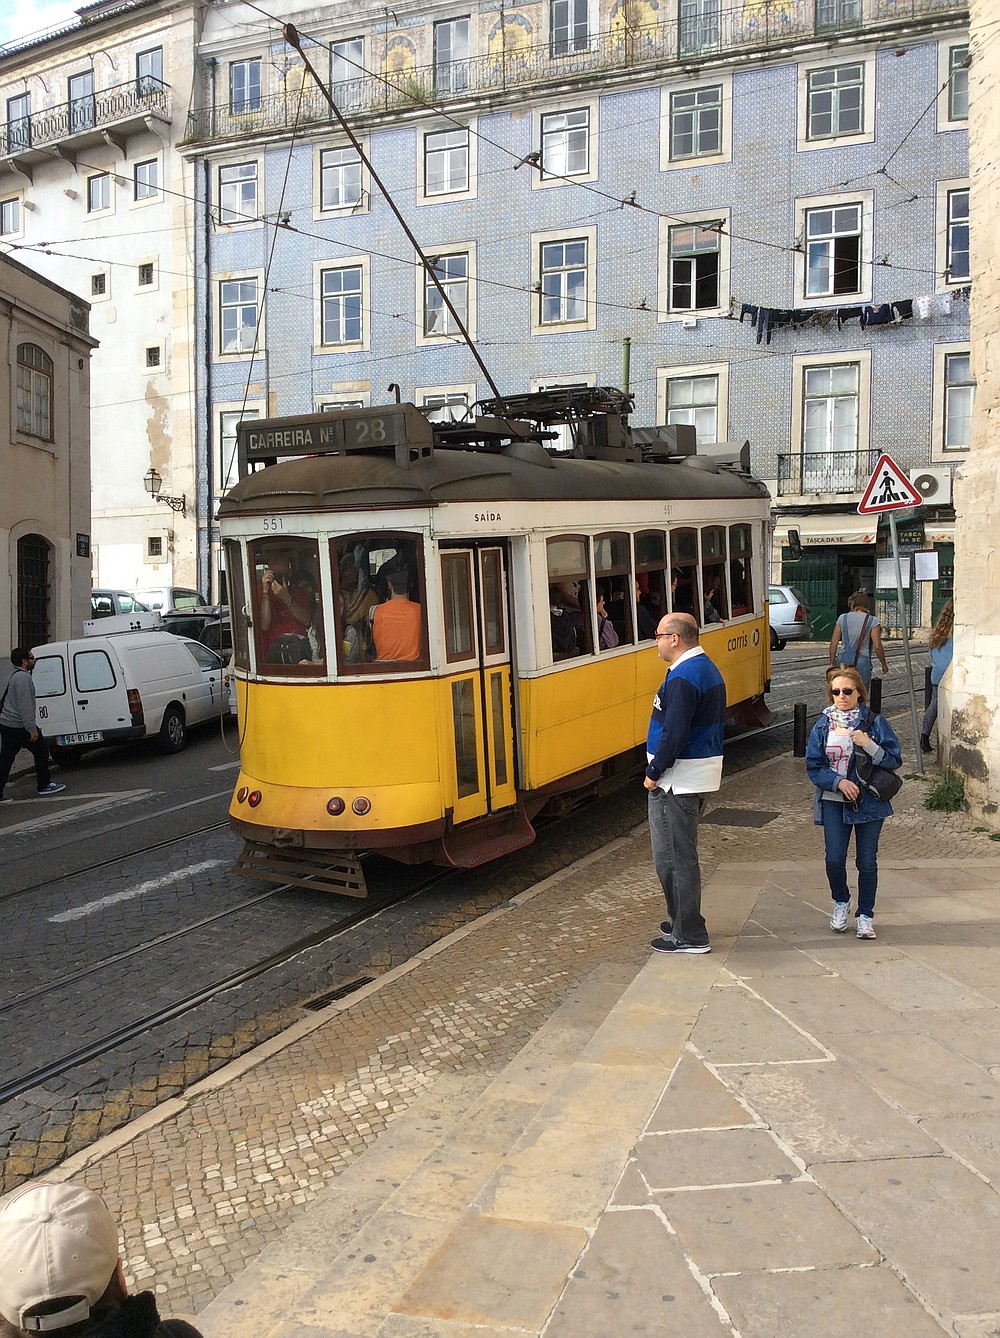 Waiting for the tram in Lisbon.